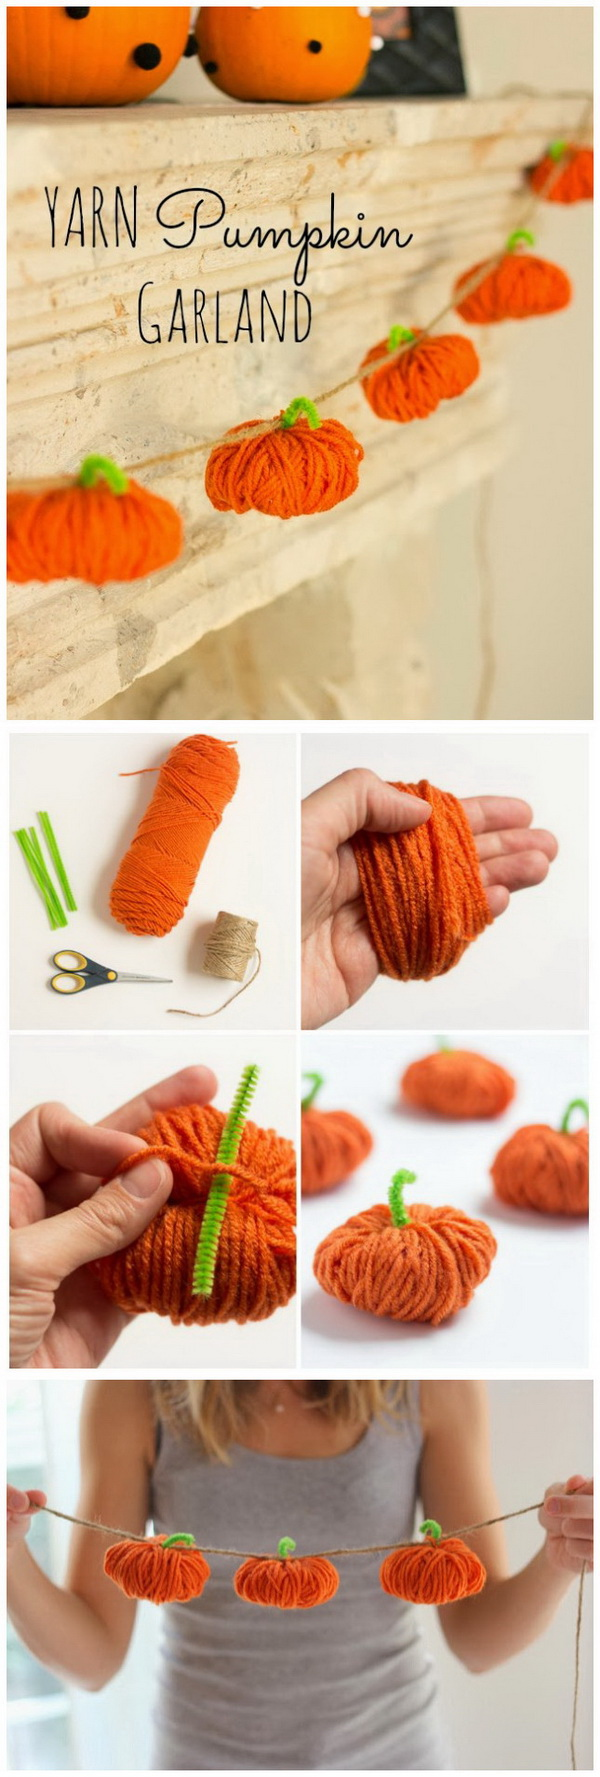 50 DIY Fall Crafts & Decoration Ideas That Are Easy and